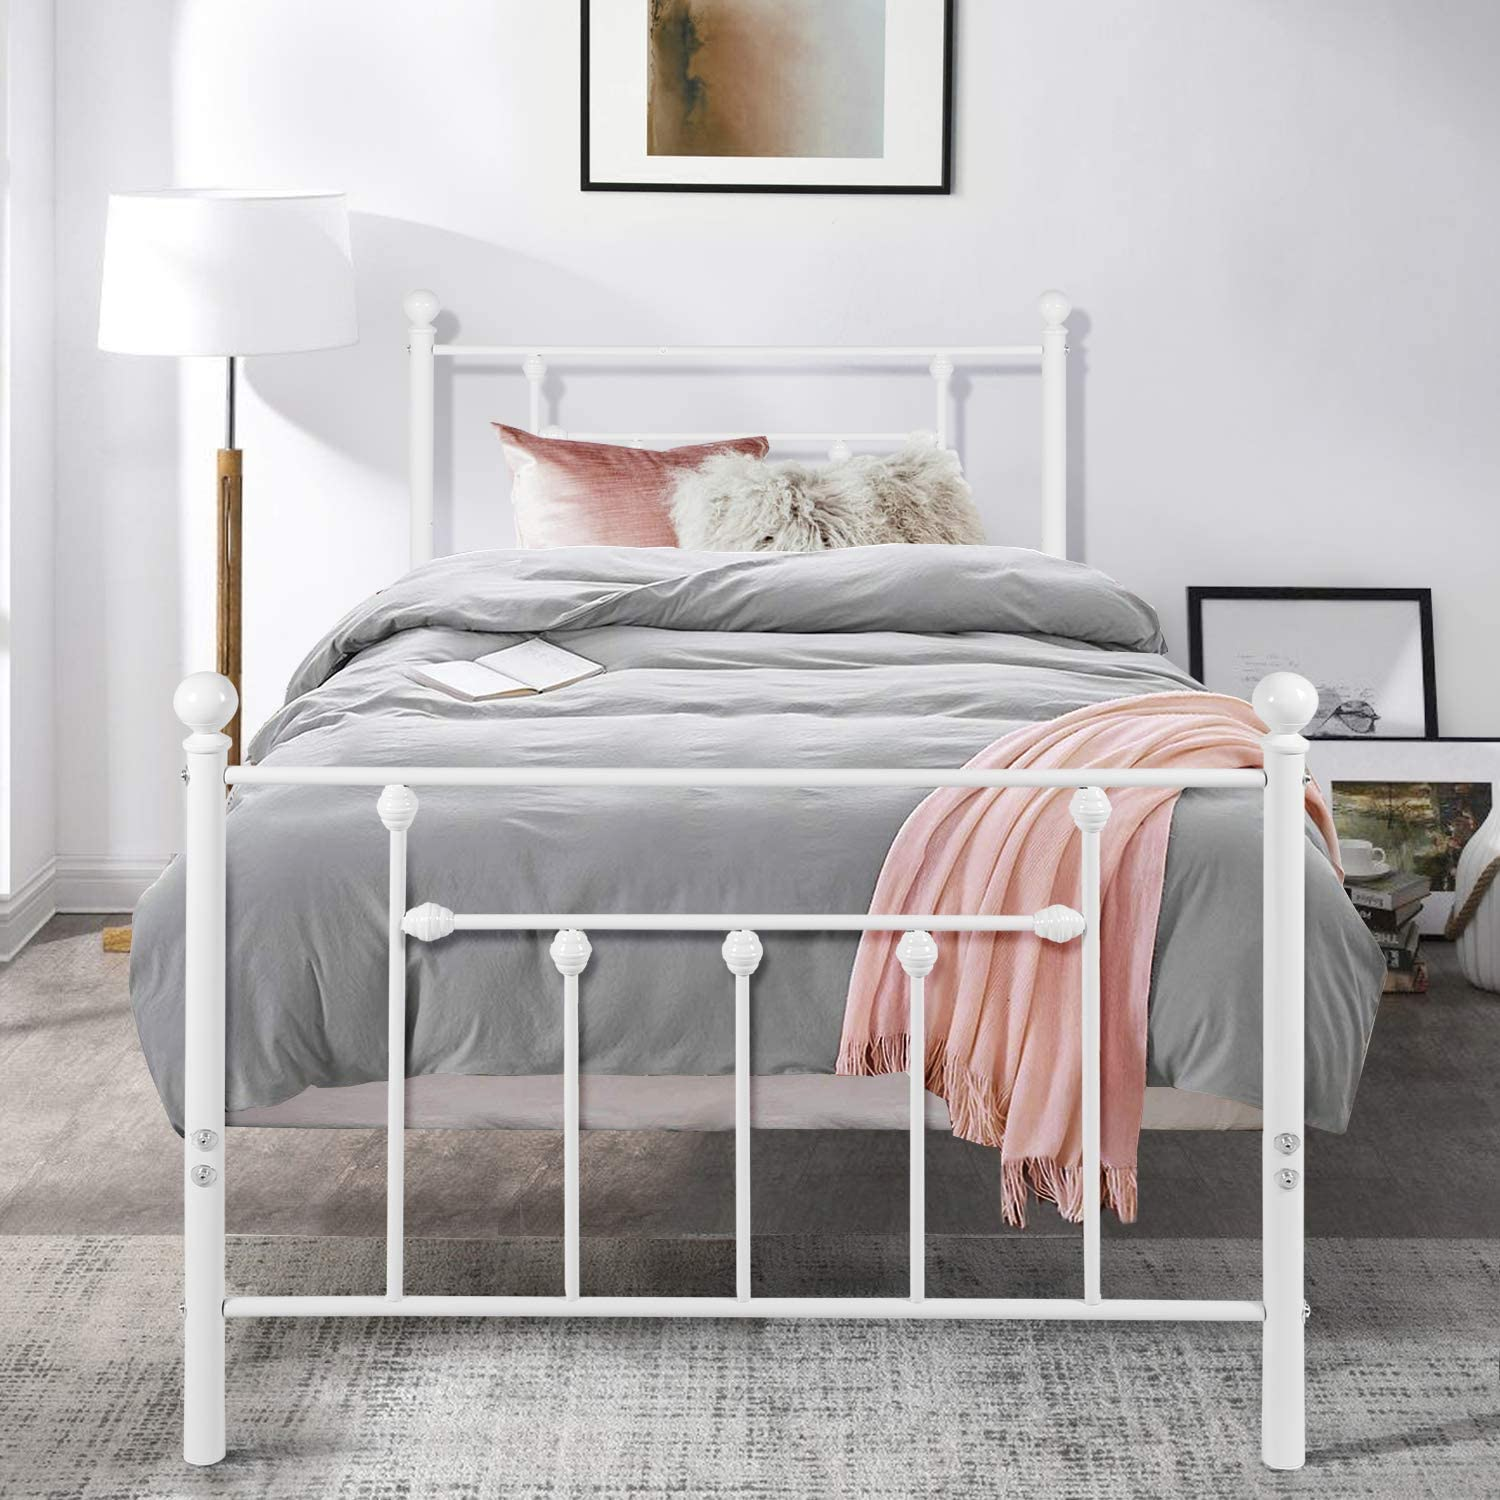 VECELO Twin Size Bed Frame, Metal Platform Mattress Foundation Box Spring Replacement with Headboard Victorian Style, White